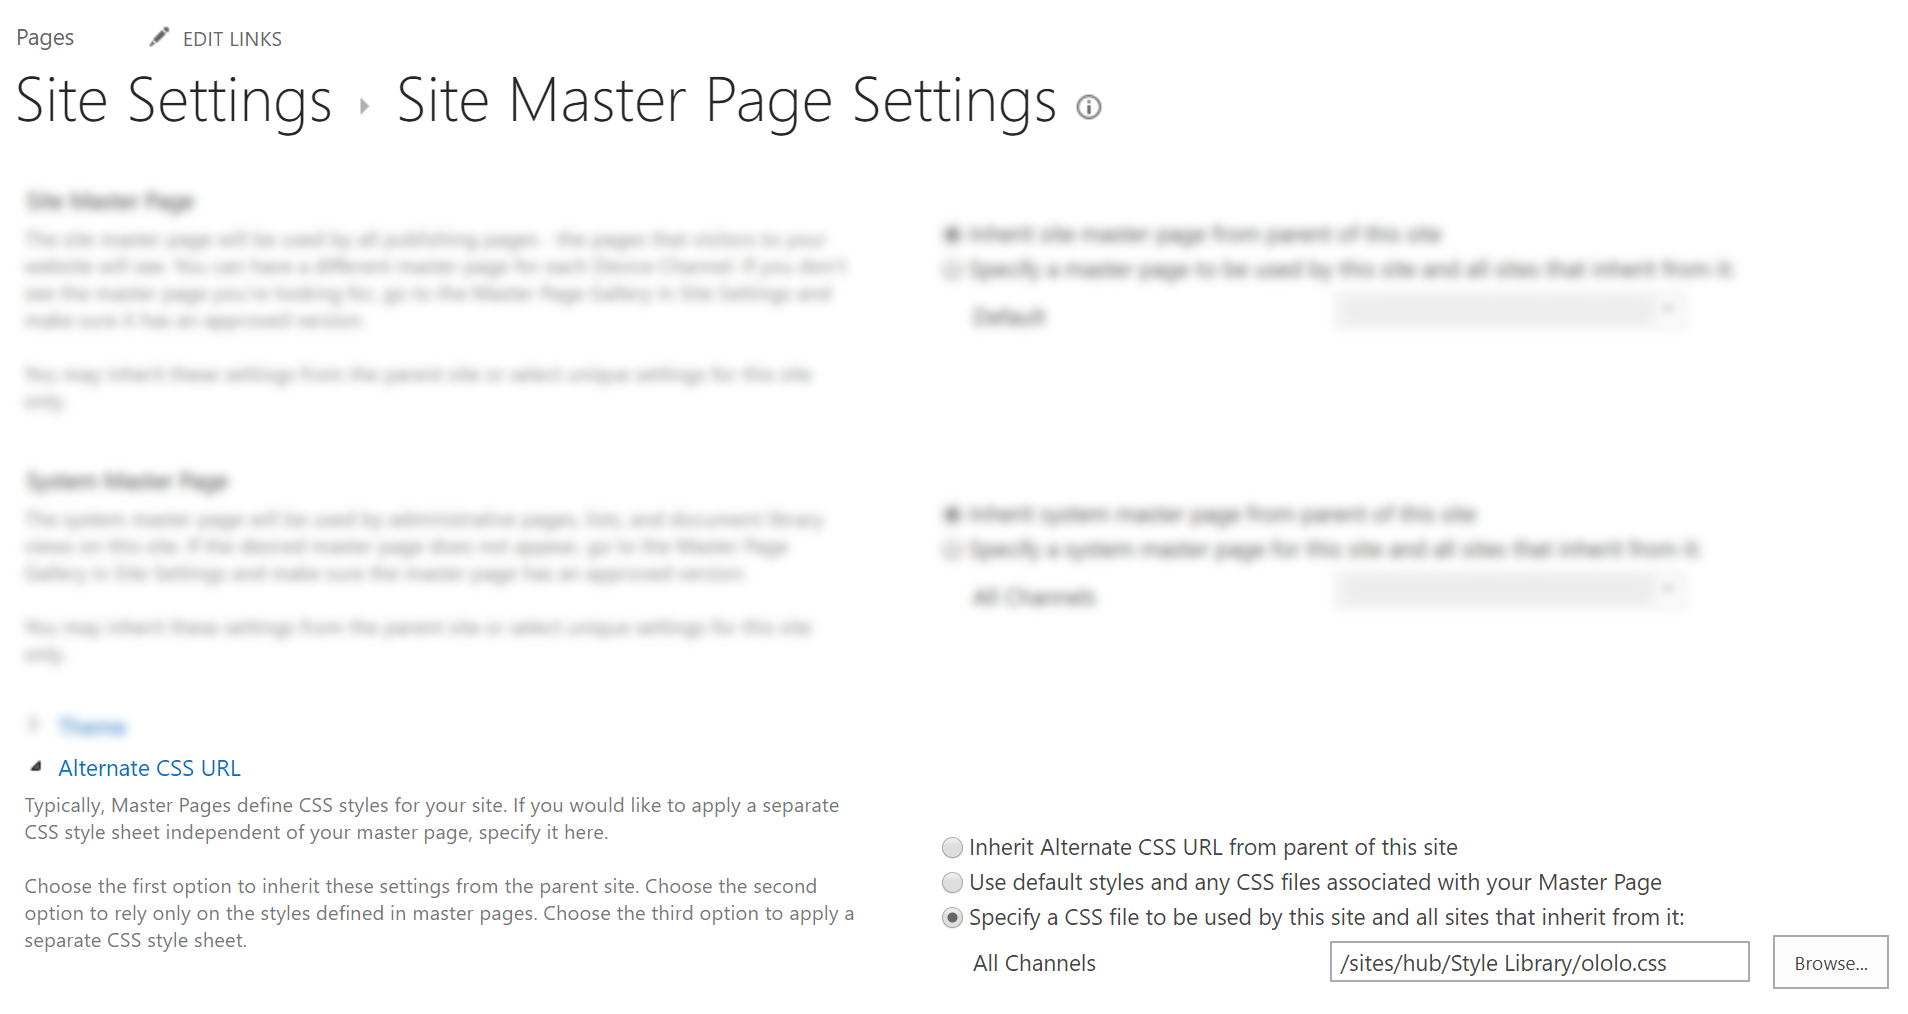 SharePoint masterpage settings